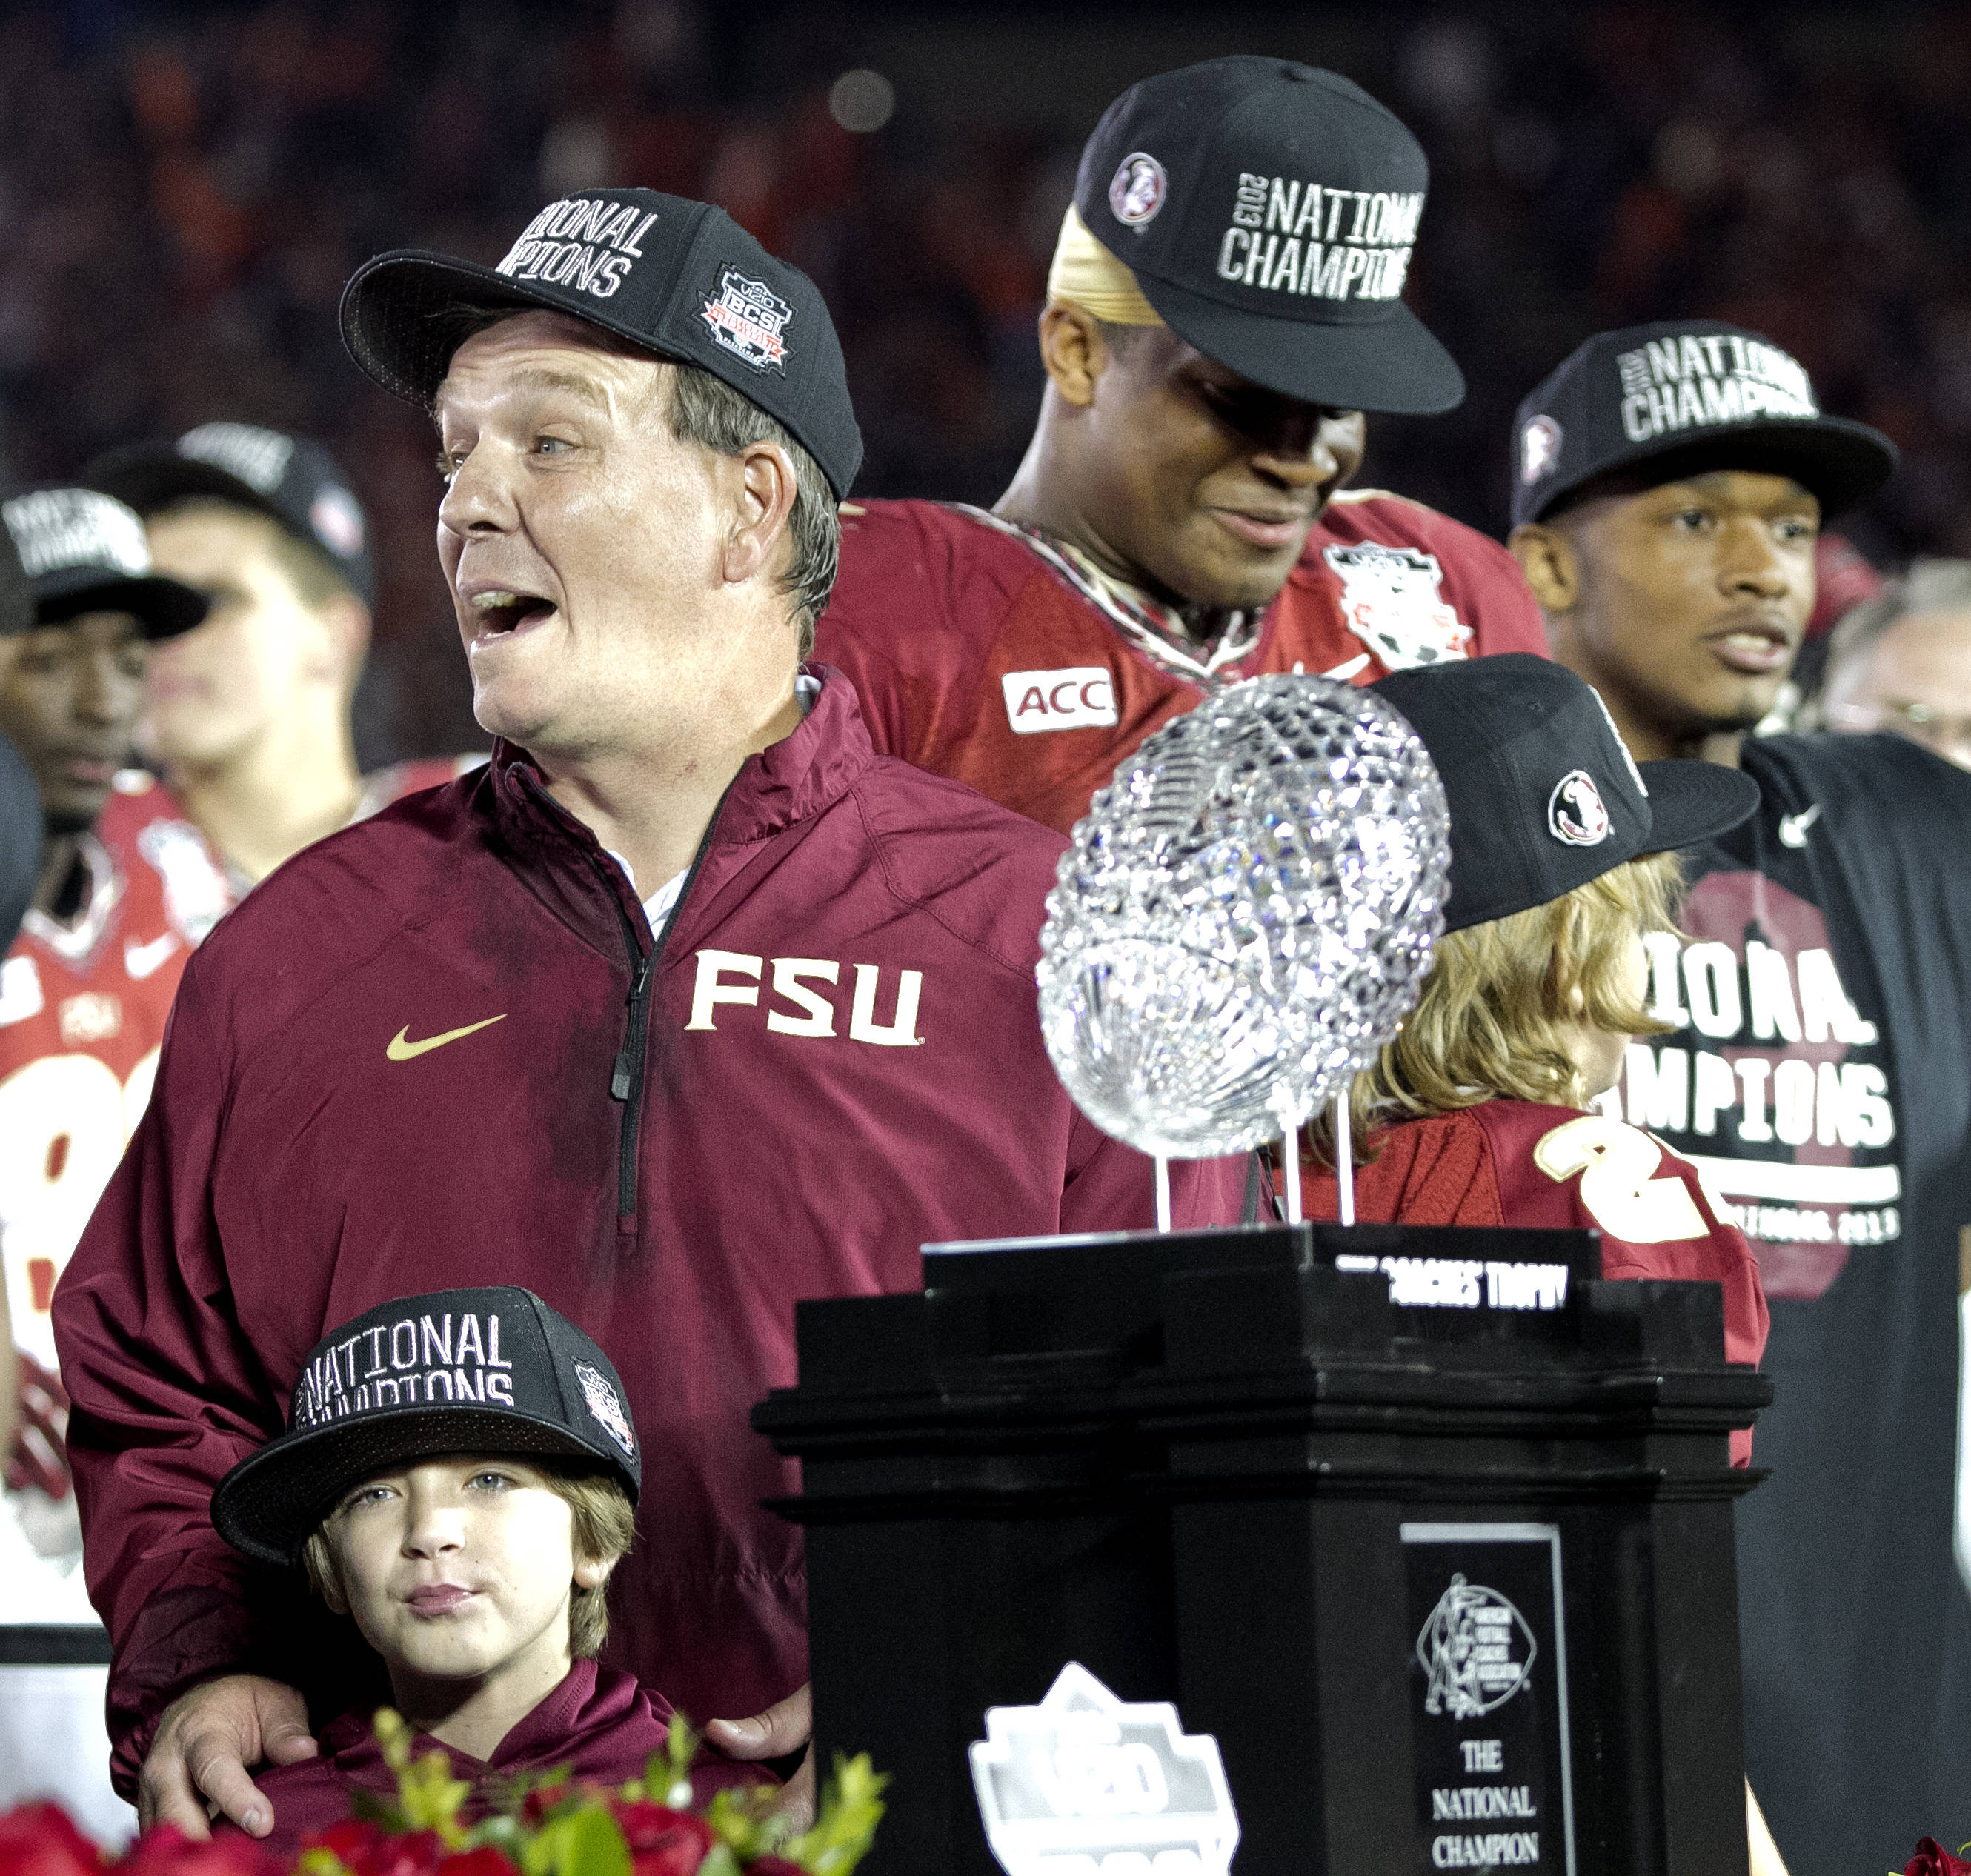 Head Coach Jimbo Fisher and son Ethan enjoy the moment together before accepting the championship trophy, BCS Championship, FSU vs Auburn, Rose Bowl, Pasadena, CA,  1-06-14,  (Photo by Steve Musco)